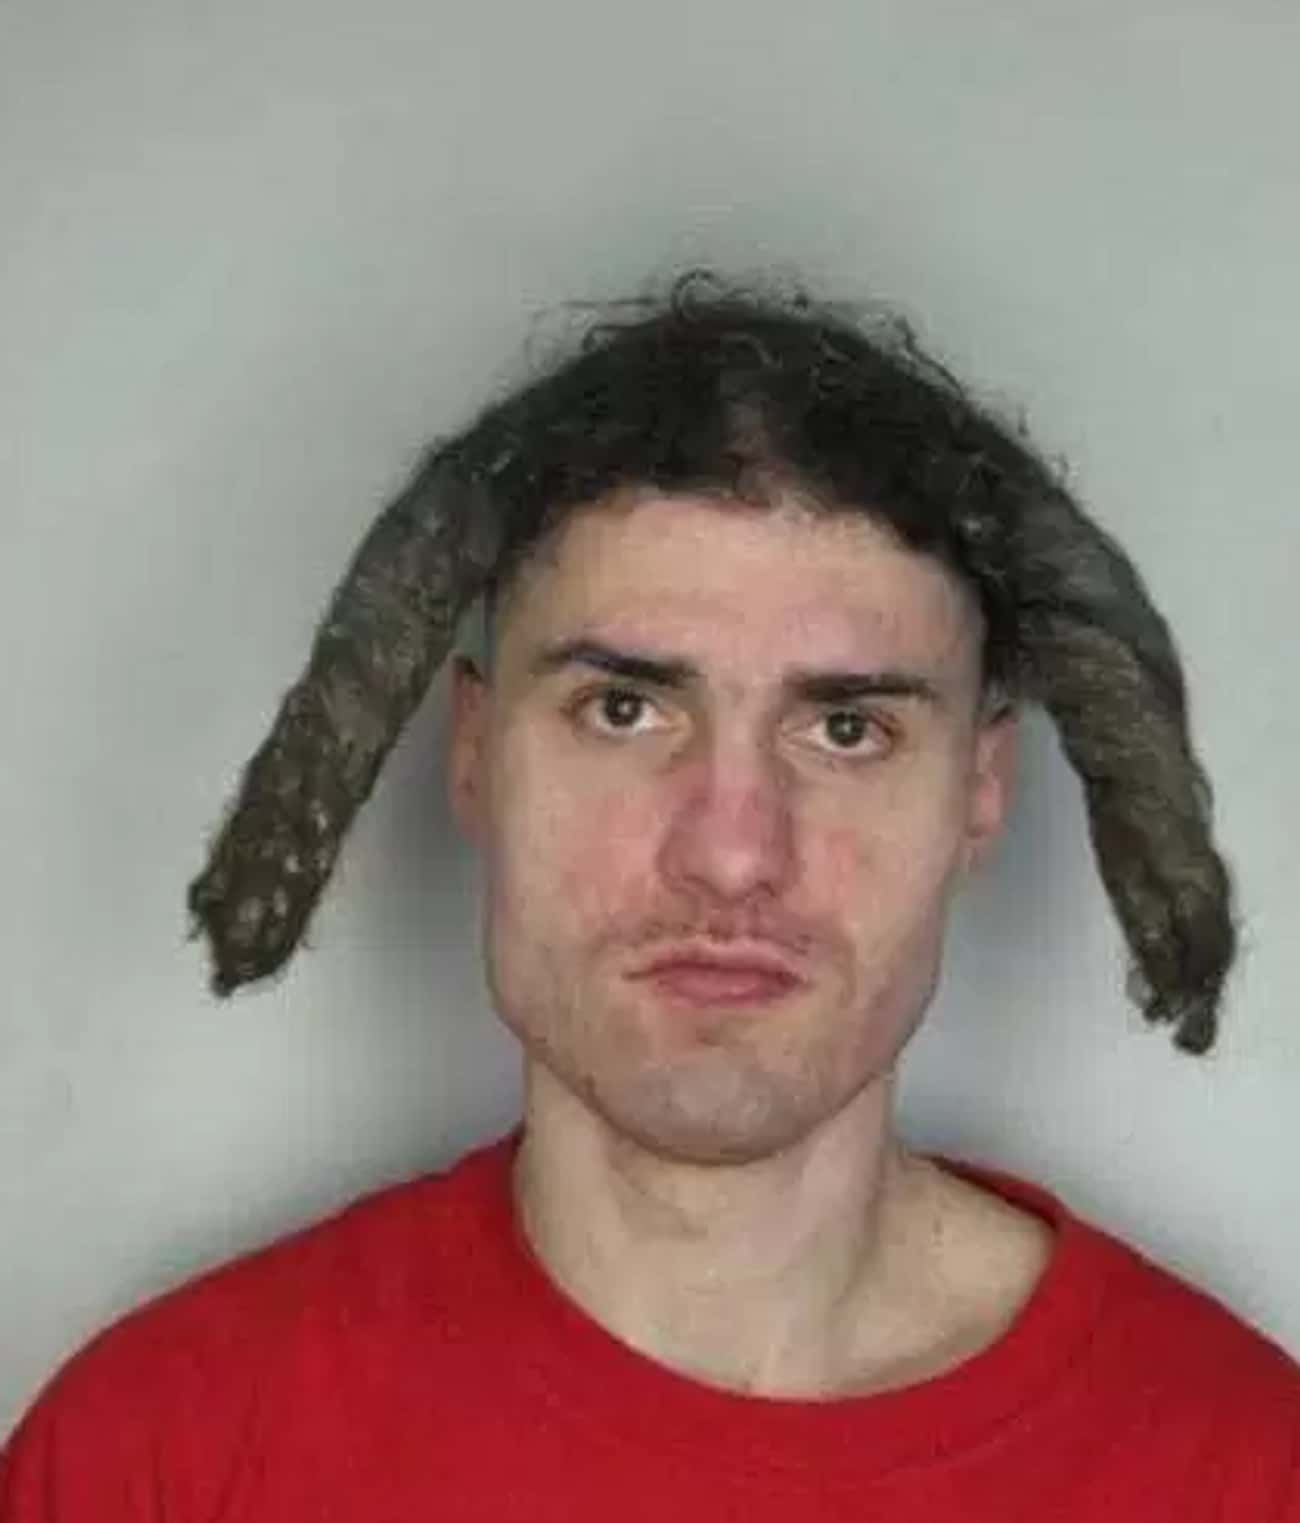 Handlebars Behind Bars is listed (or ranked) 1 on the list 27 Of The Most Embarrassing Mugshot Hairdos Ever